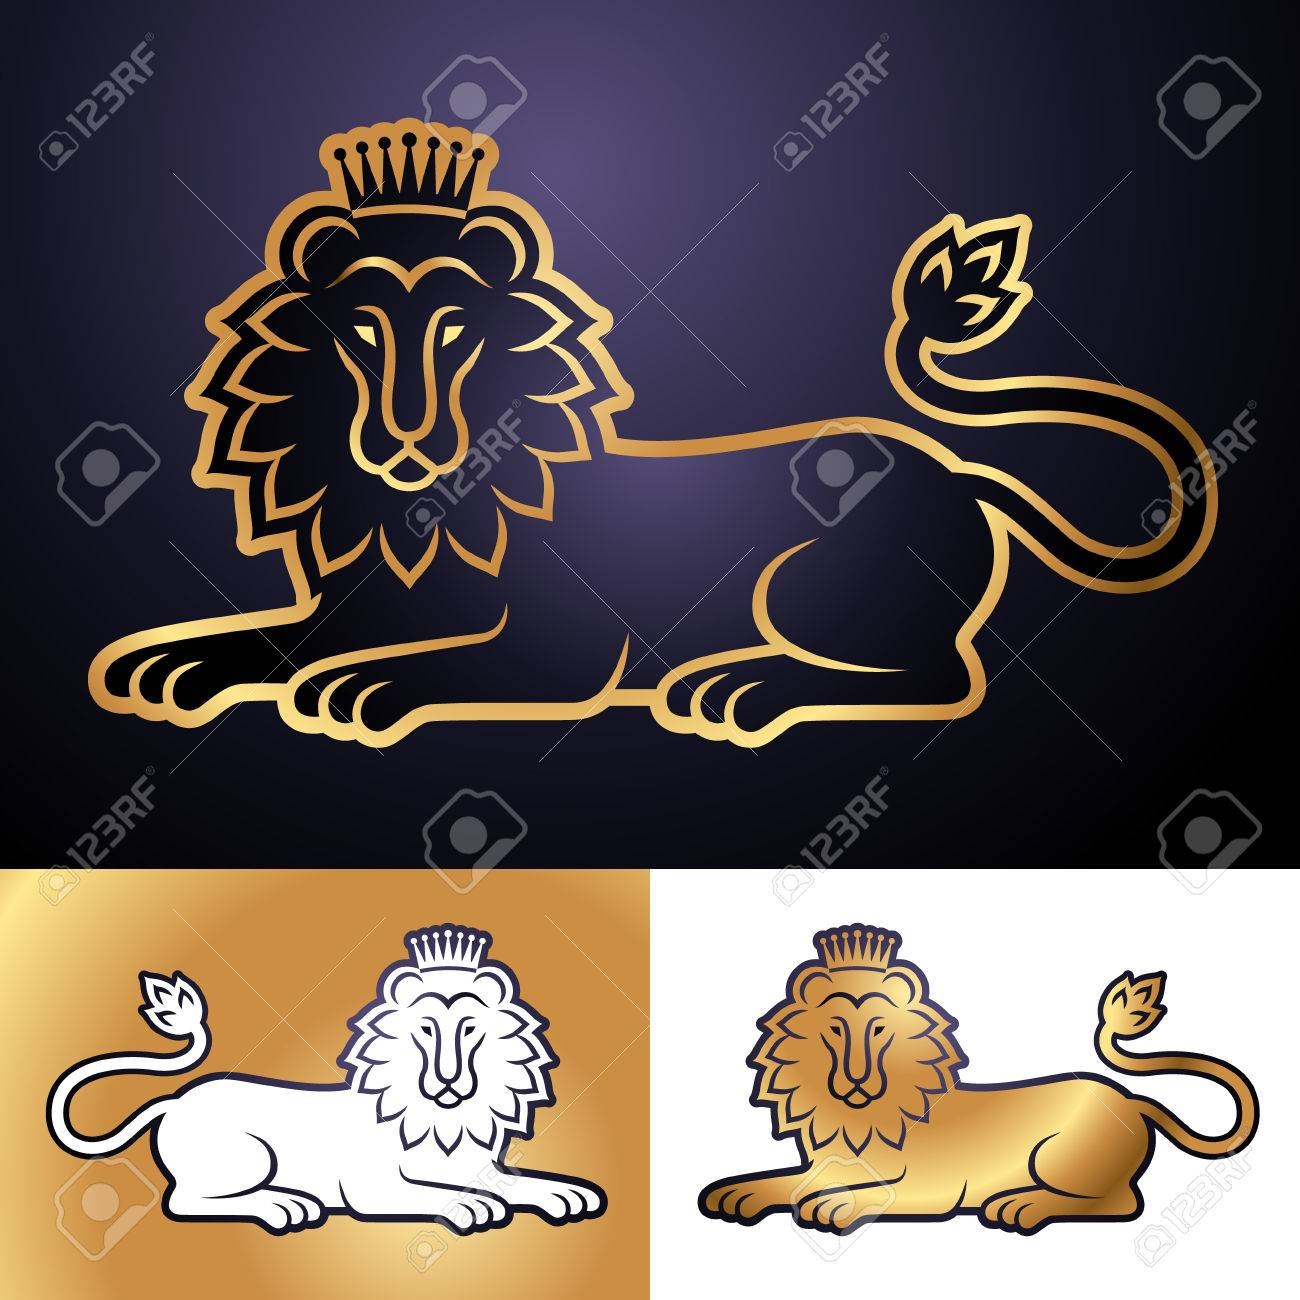 Lying Lion In The Crown Set Of Heraldic Symbols For Your Design